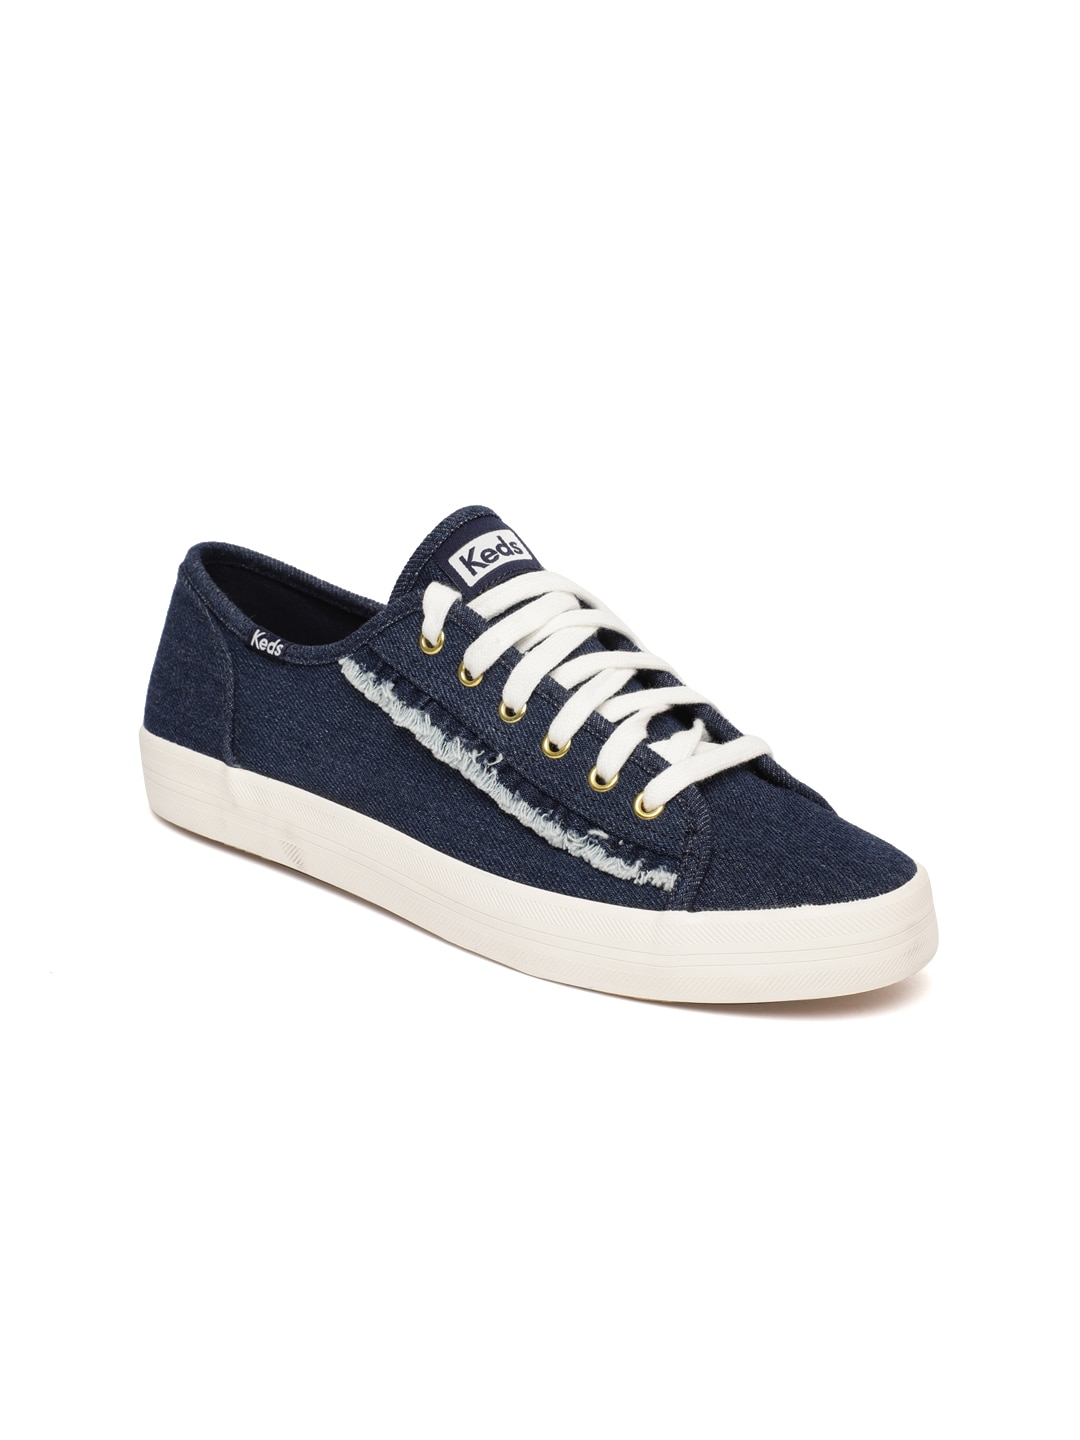 e95beb3df98 KEDS .  keds  shoes  flats. Keds Champion Oxford Leather Sneaker ... Select  Size to Continue. M 5b773881aa571941bf620a4b .